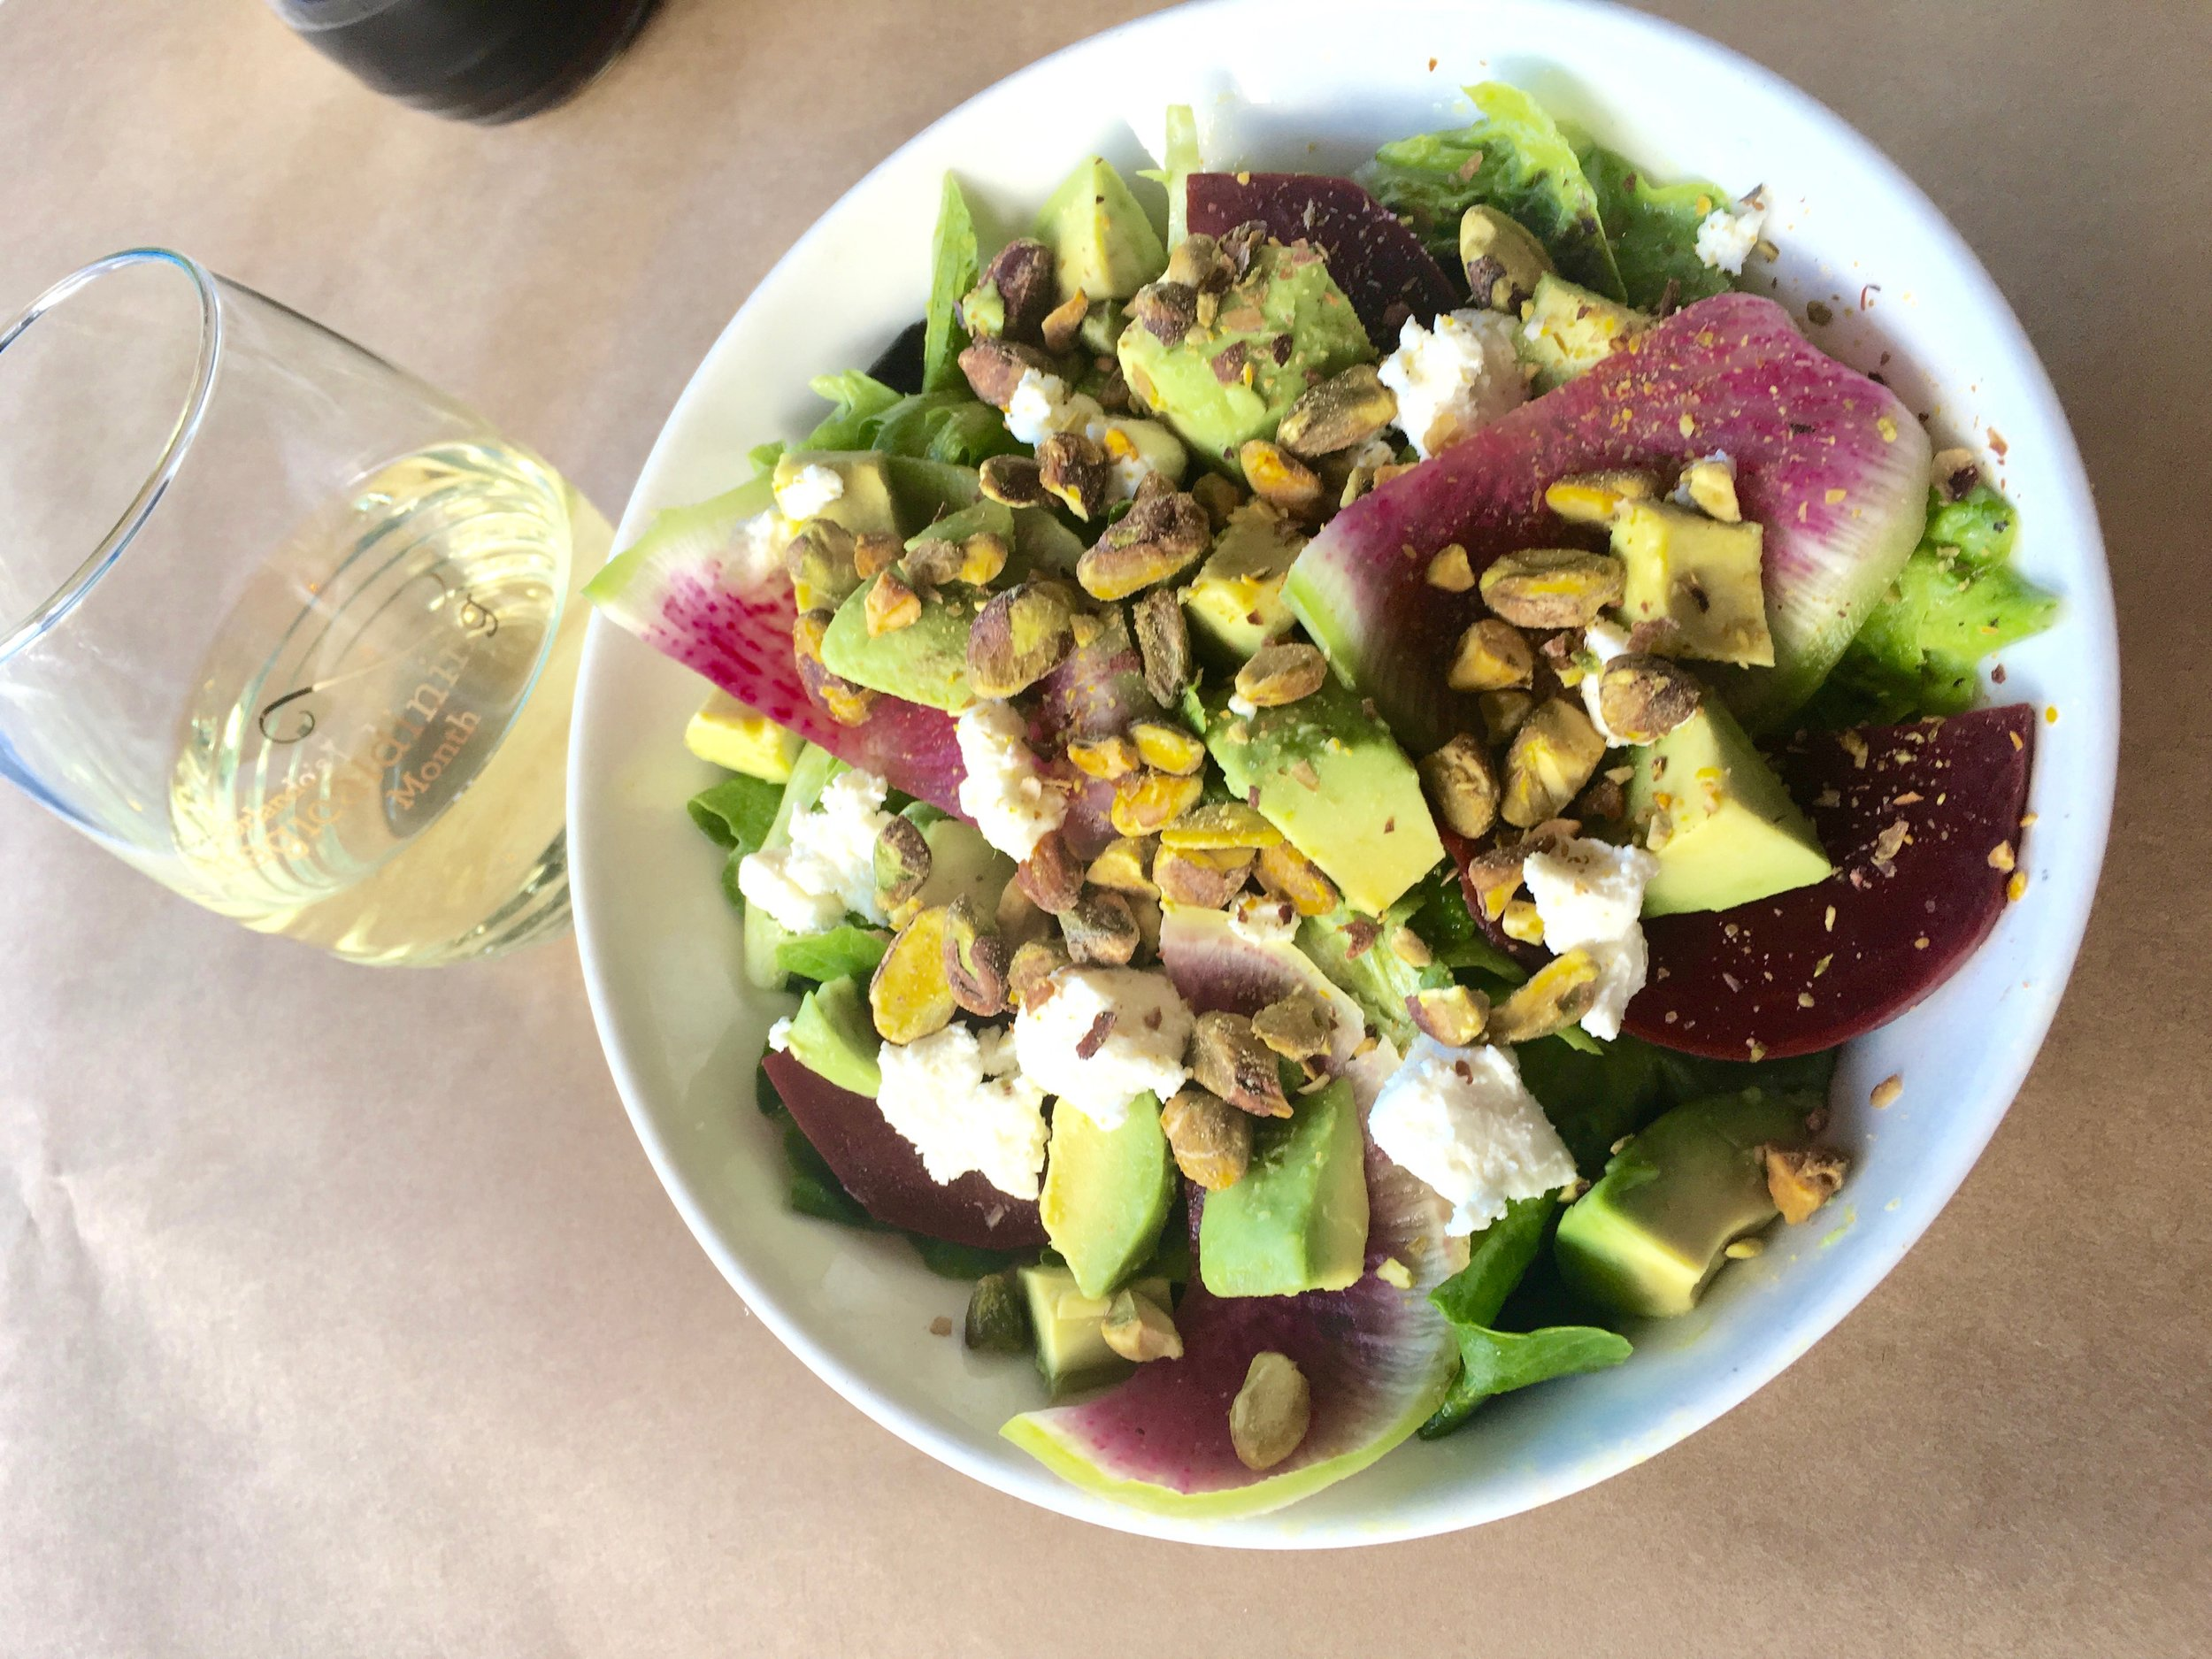 Gatherer salad for Orlando Magical Dining Month 2016